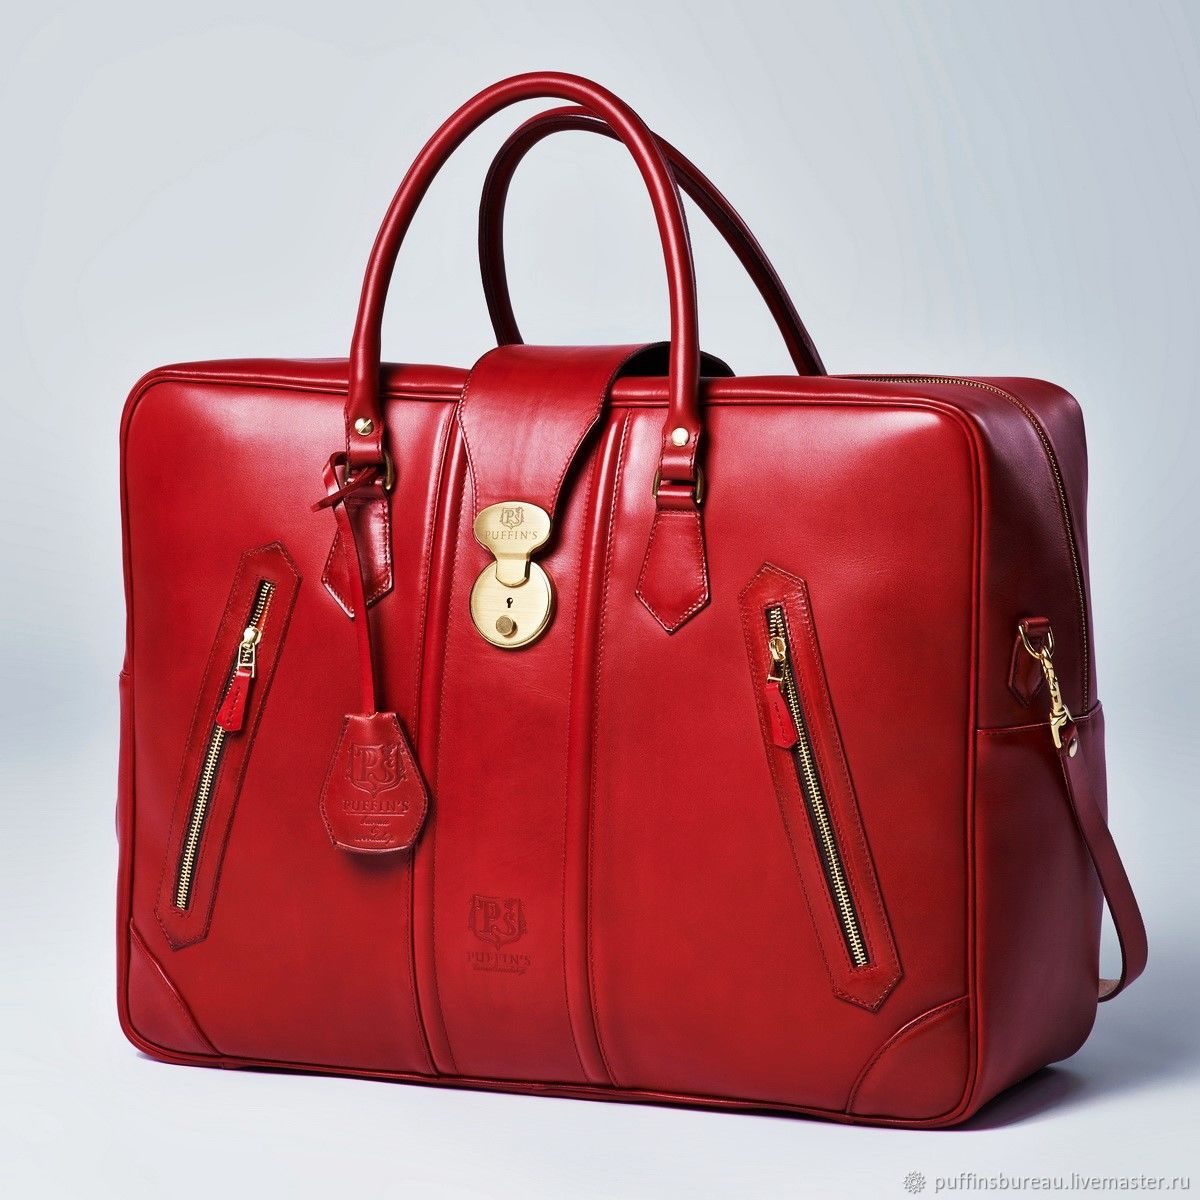 Travel bag HOLIDAY red currant & blue deep, Bags and accessories, Moscow,  Фото №1